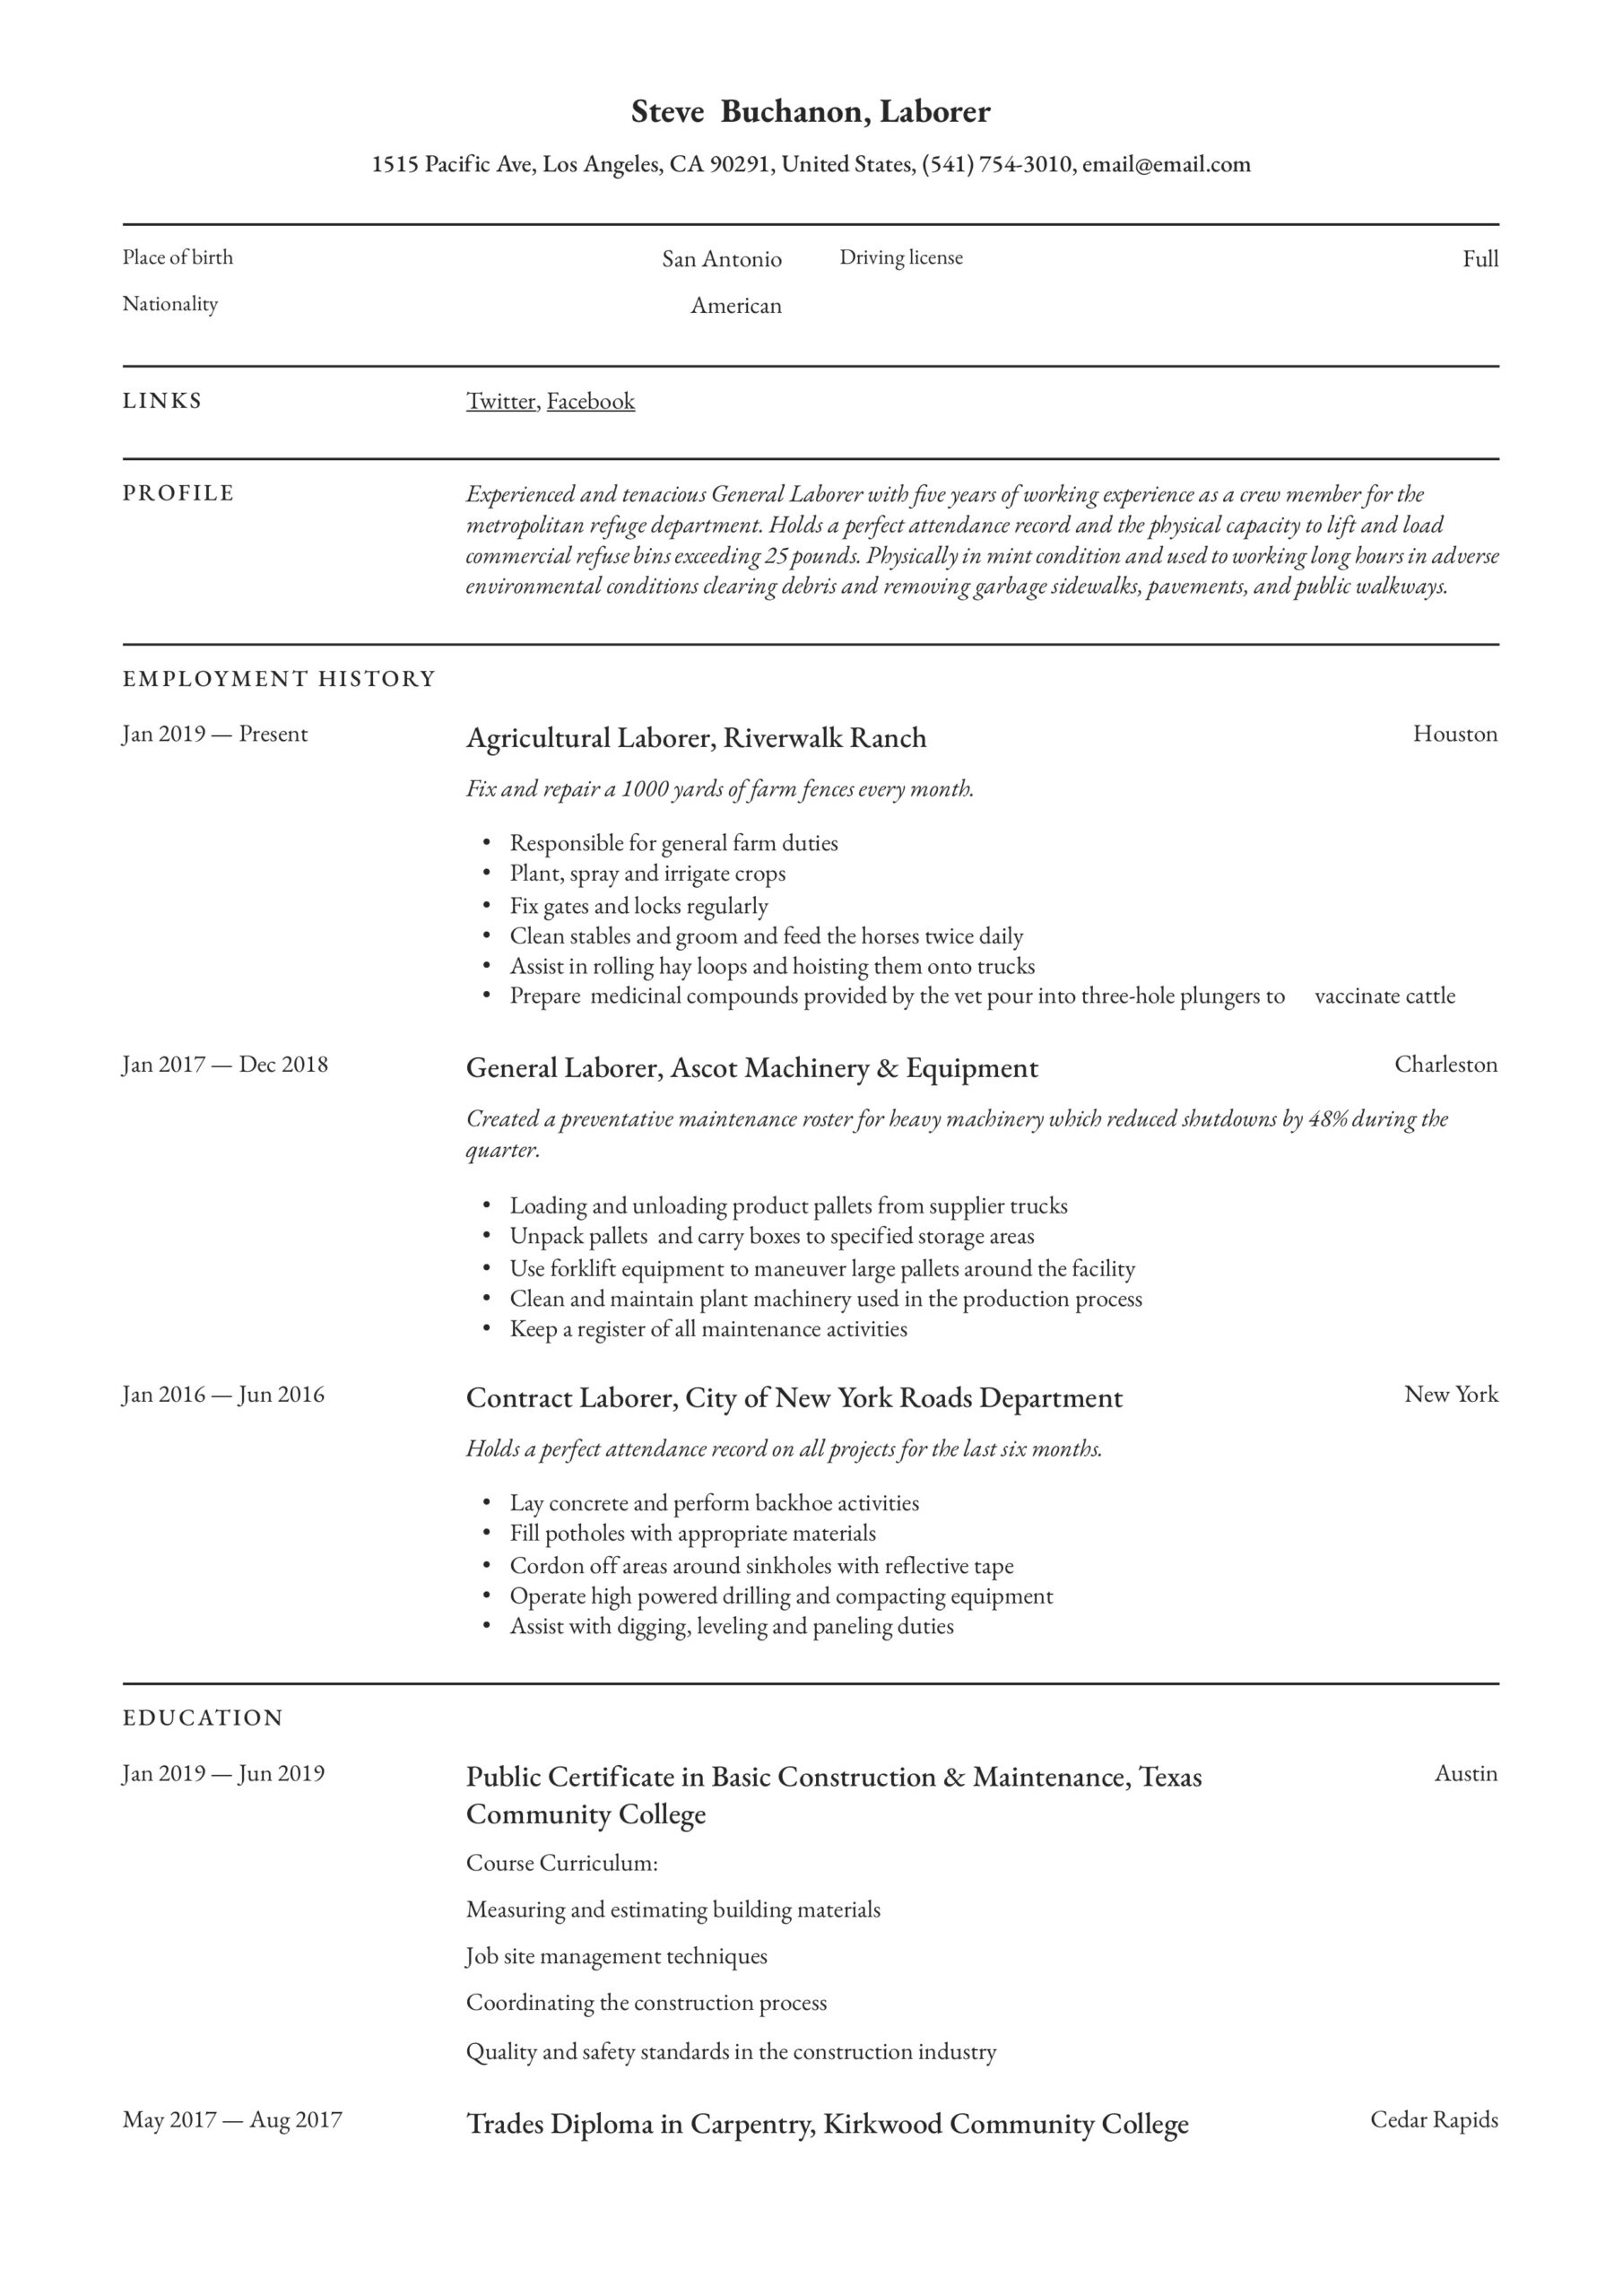 general laborer resume writing guide free templates headline for referee skills harvard Resume General Headline For Resume